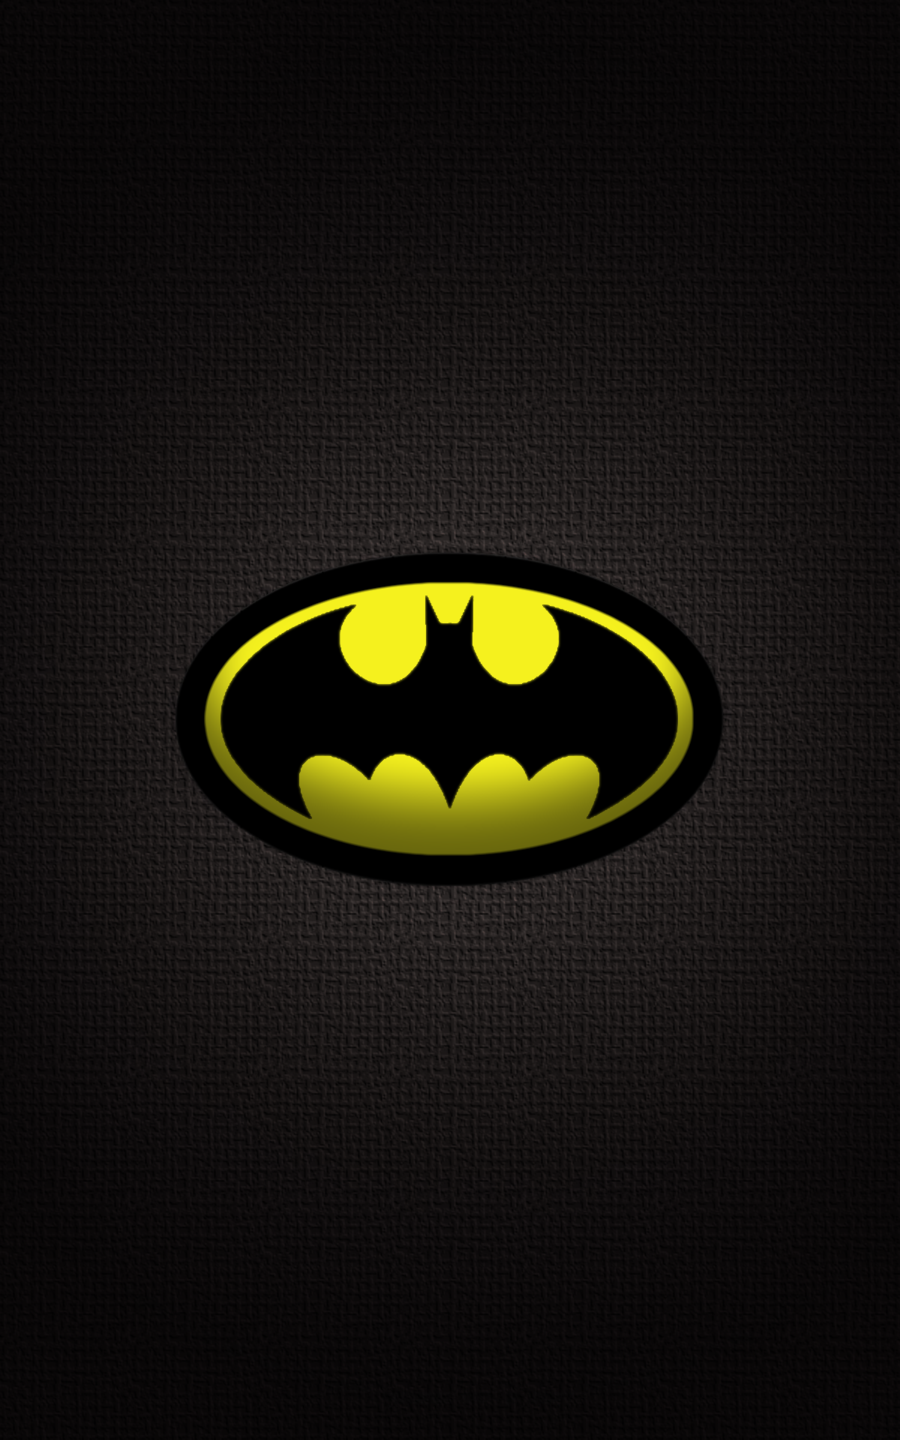 Hd wallpapers for iphone - Batman Hd Wallpaper For Iphone